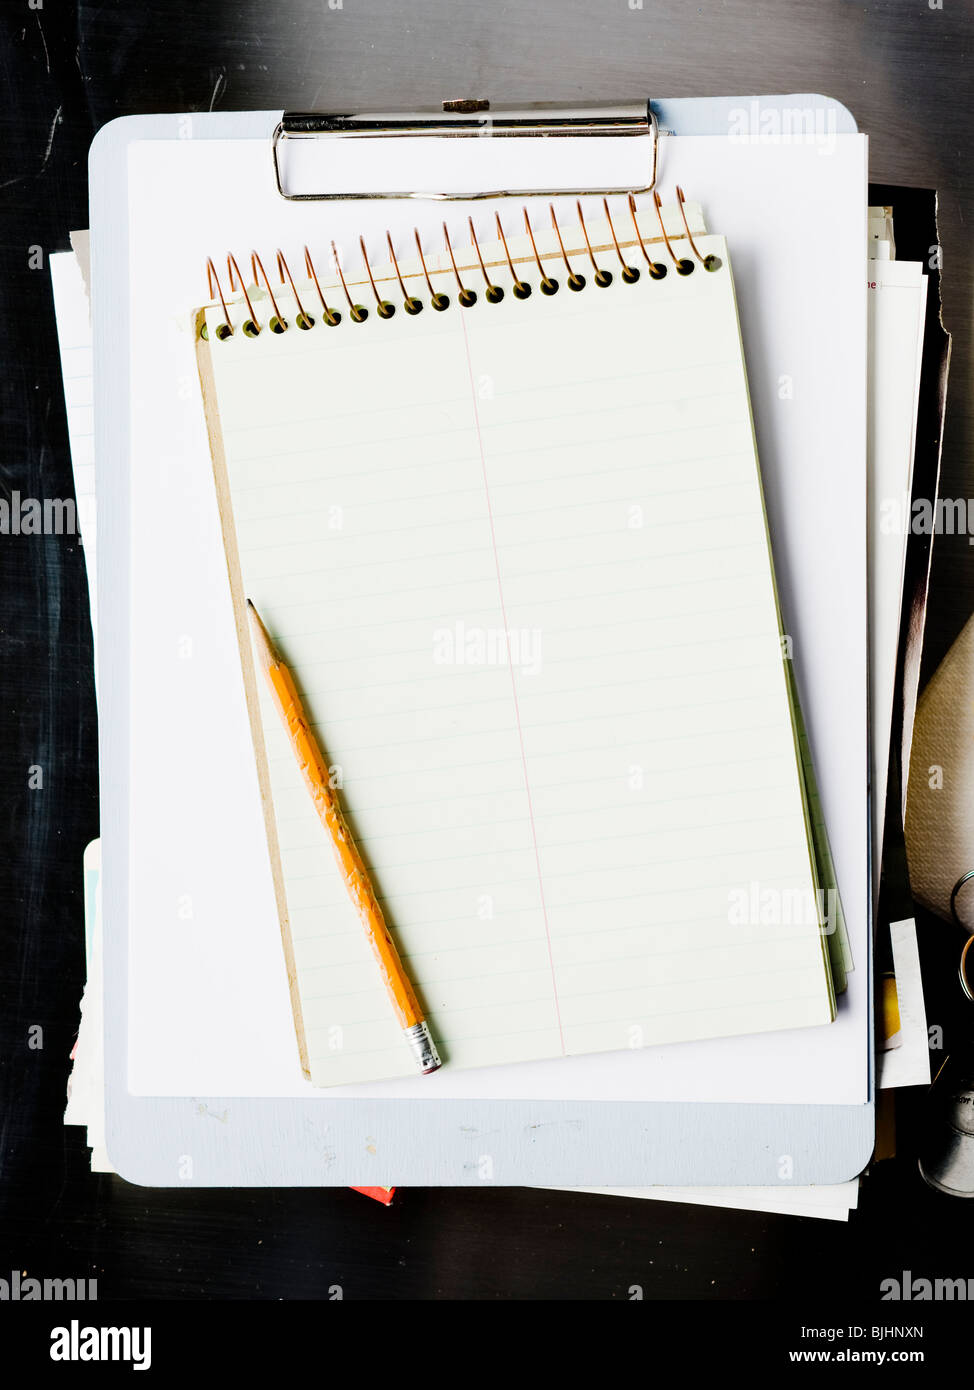 notebook and files - Stock Image